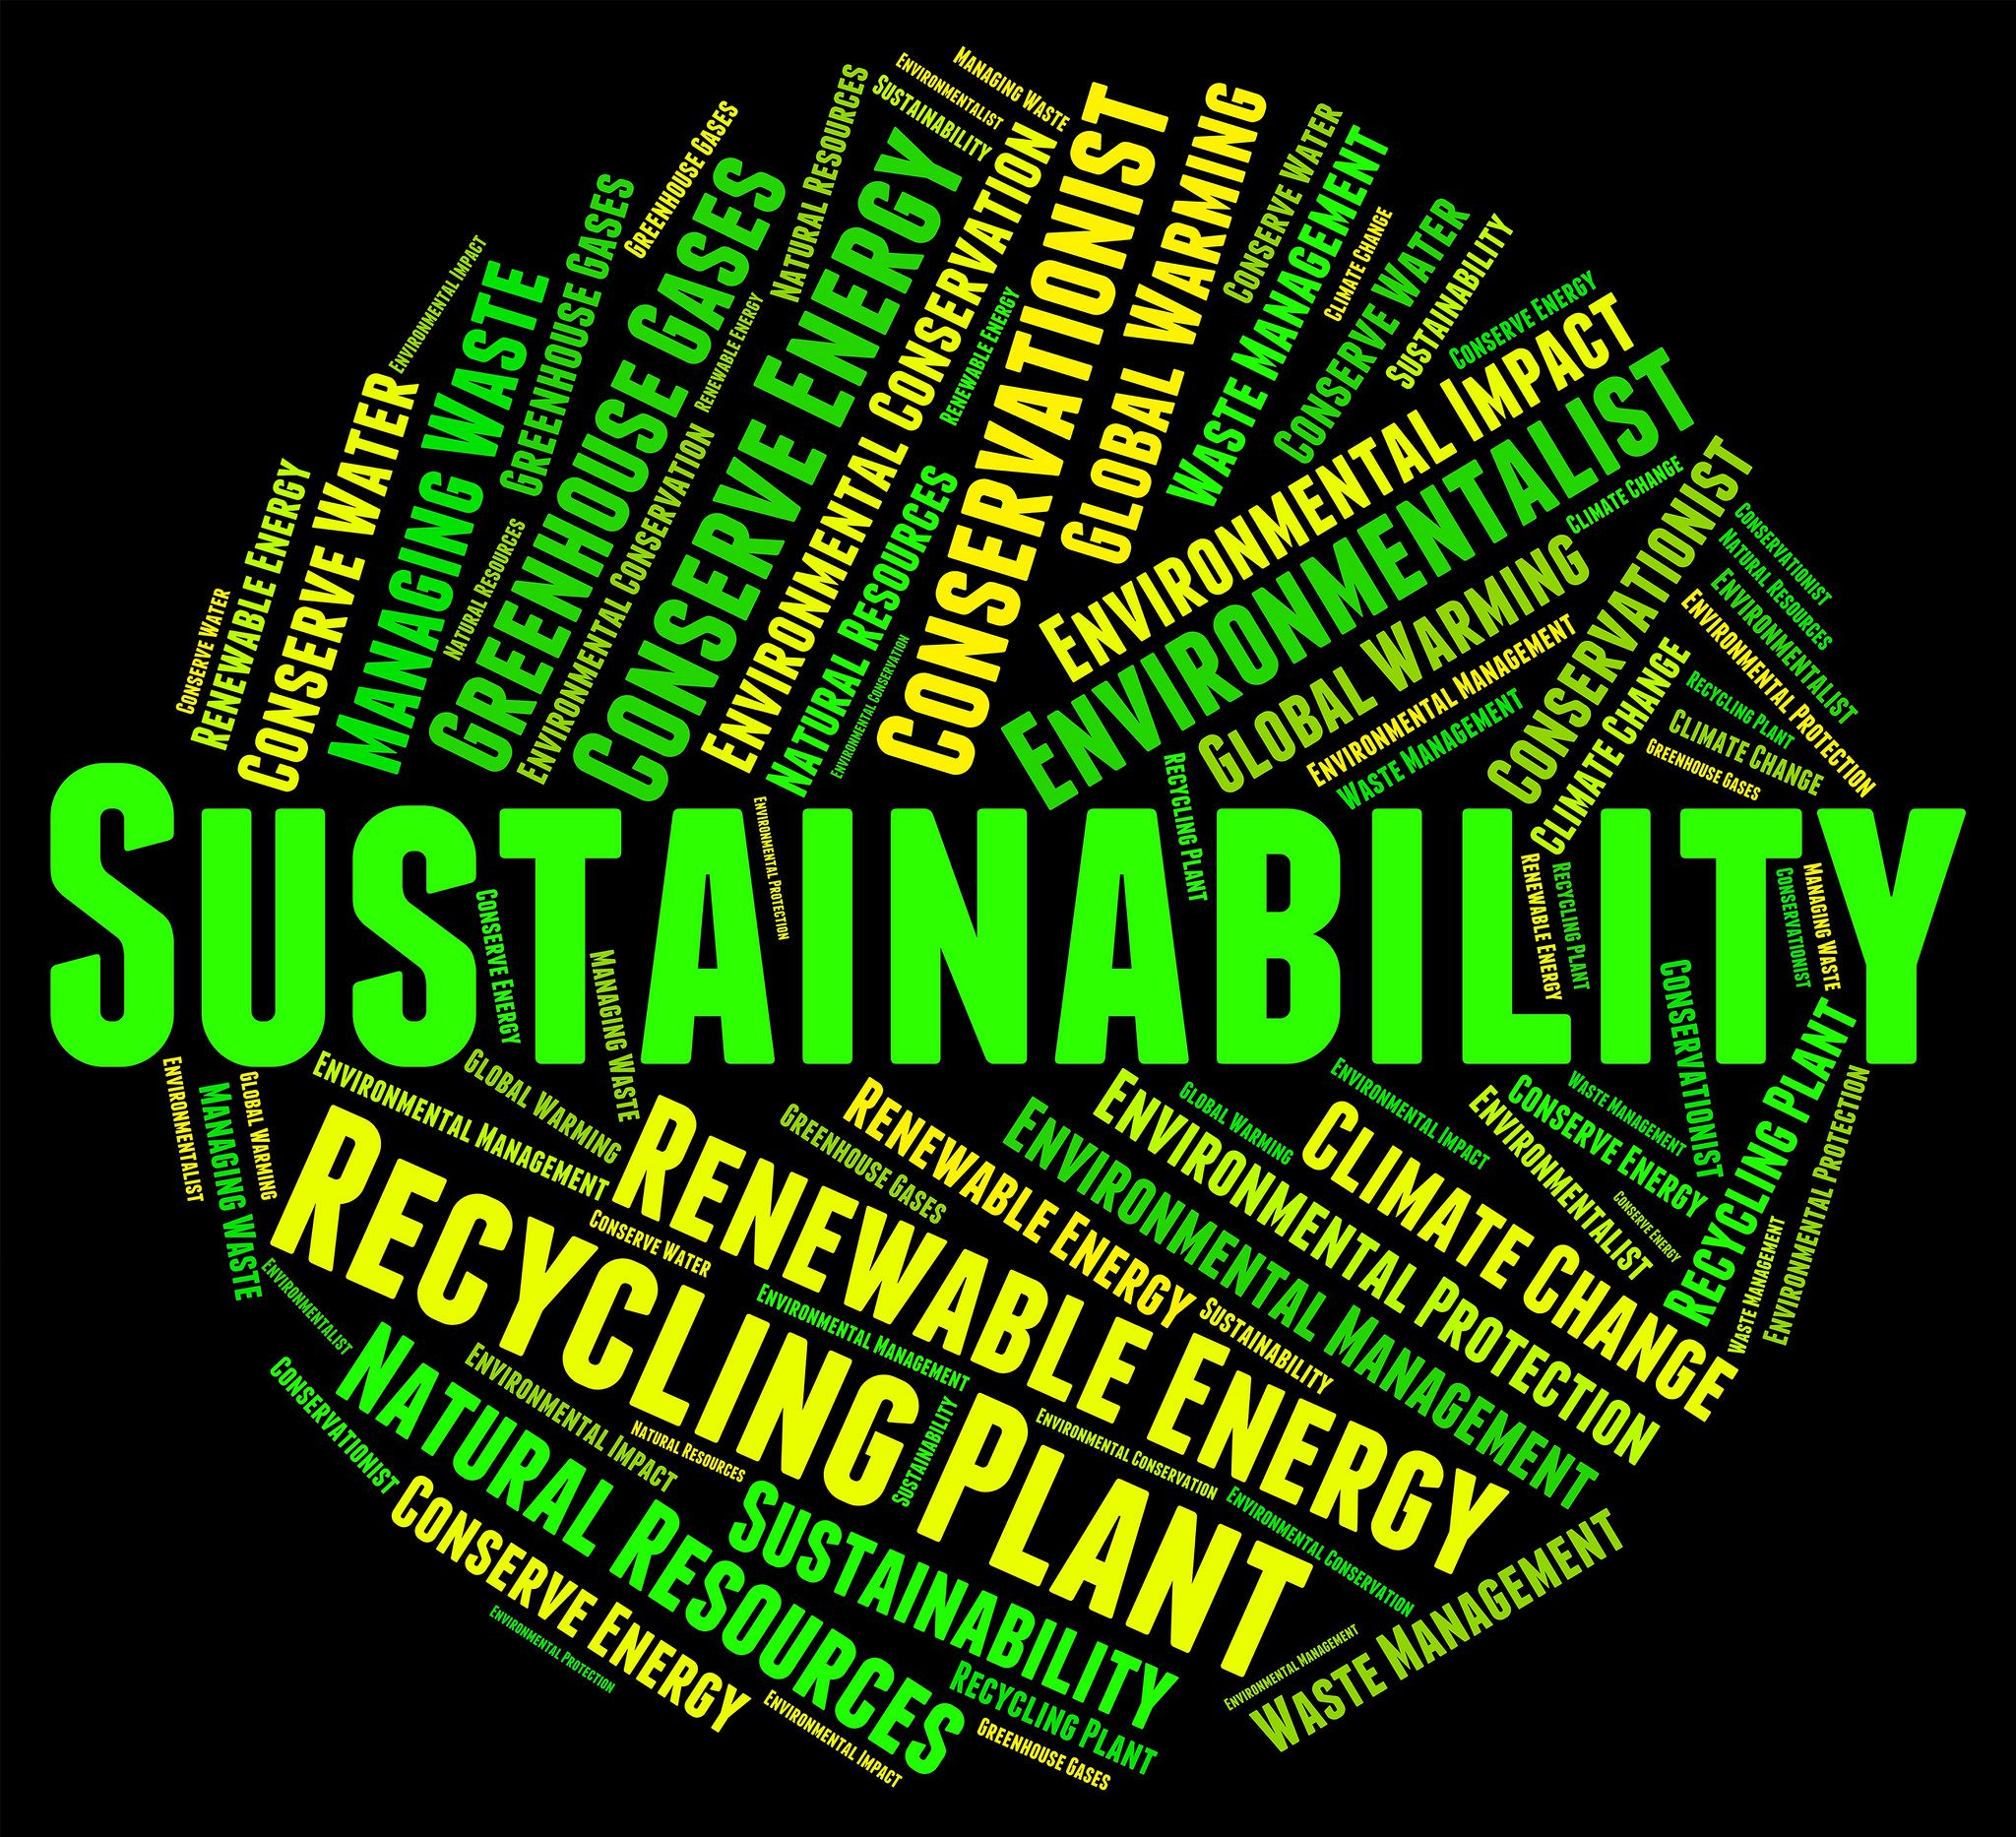 Words linked to sustainability